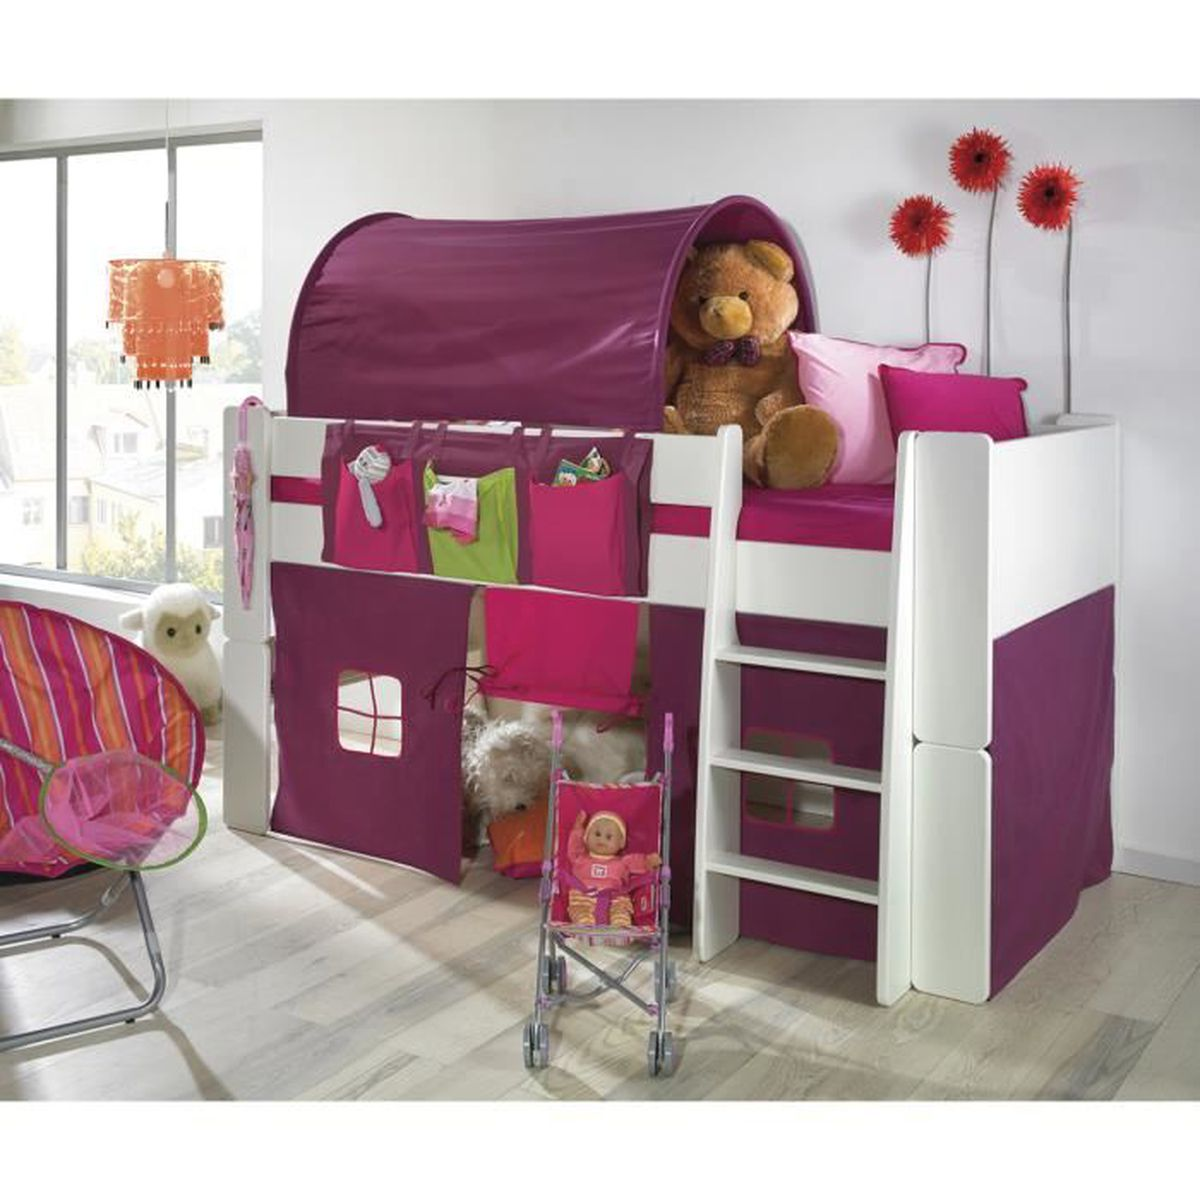 lit mi hauteur en pin blanchi avec habillage de lit et tunnel rose violet achat vente lit. Black Bedroom Furniture Sets. Home Design Ideas